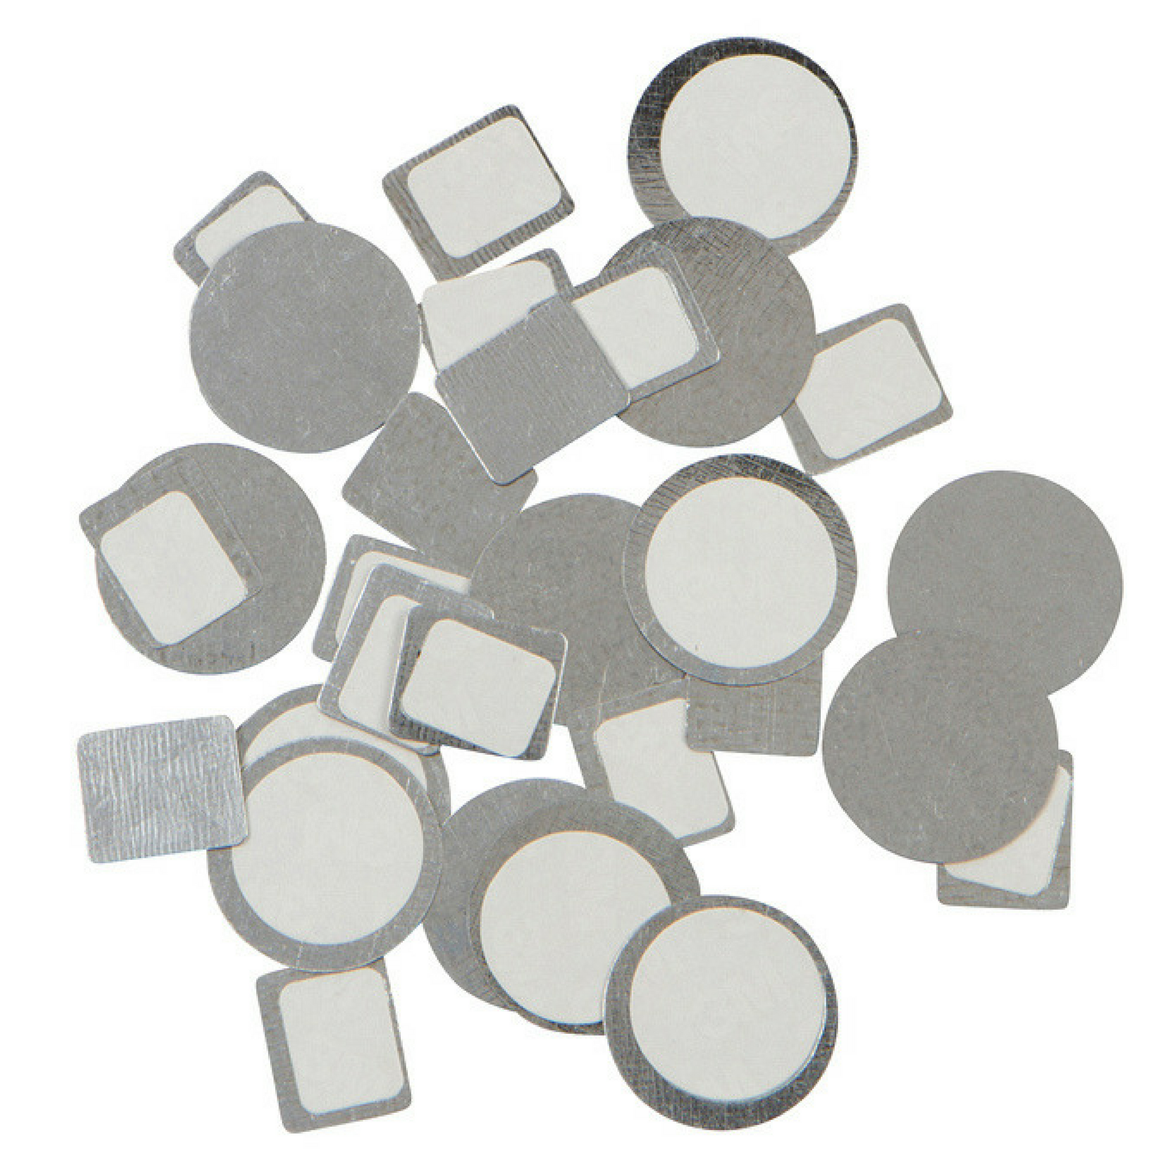 80 Metal, Magnetic Stickers (circles & squares)